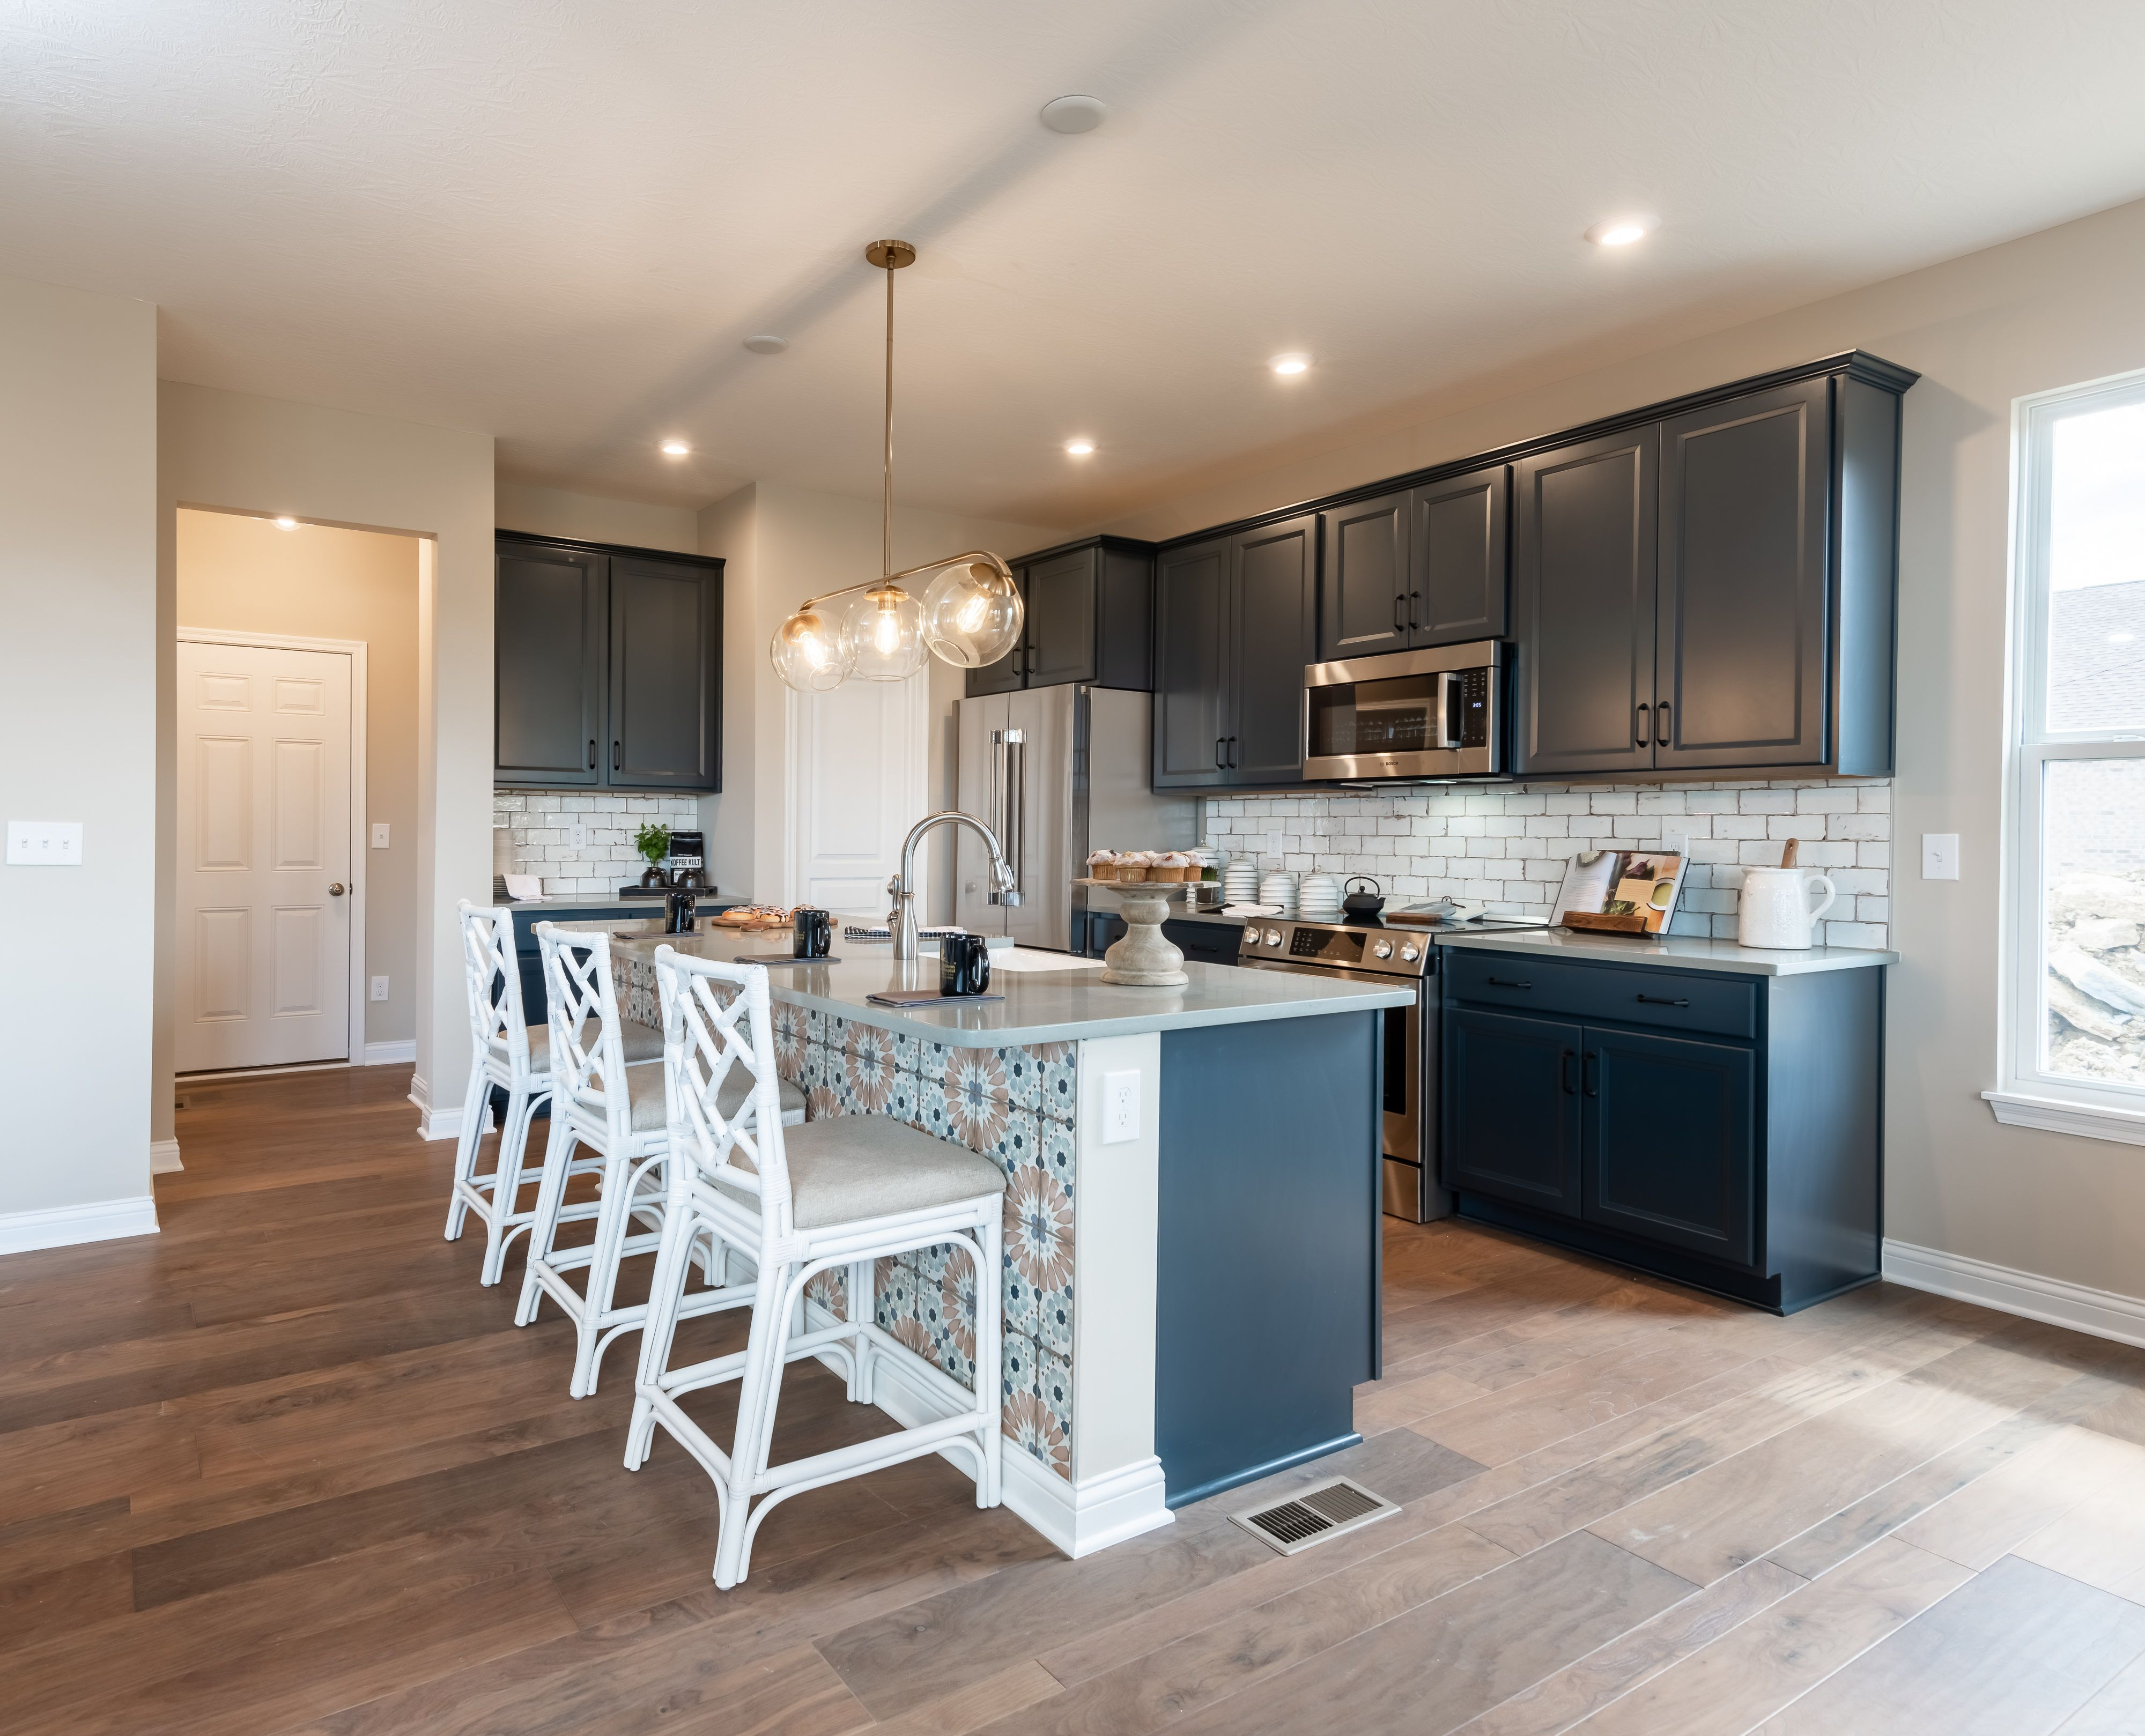 Kitchen featured in the Keaton By Fischer Homes  in Cincinnati, KY